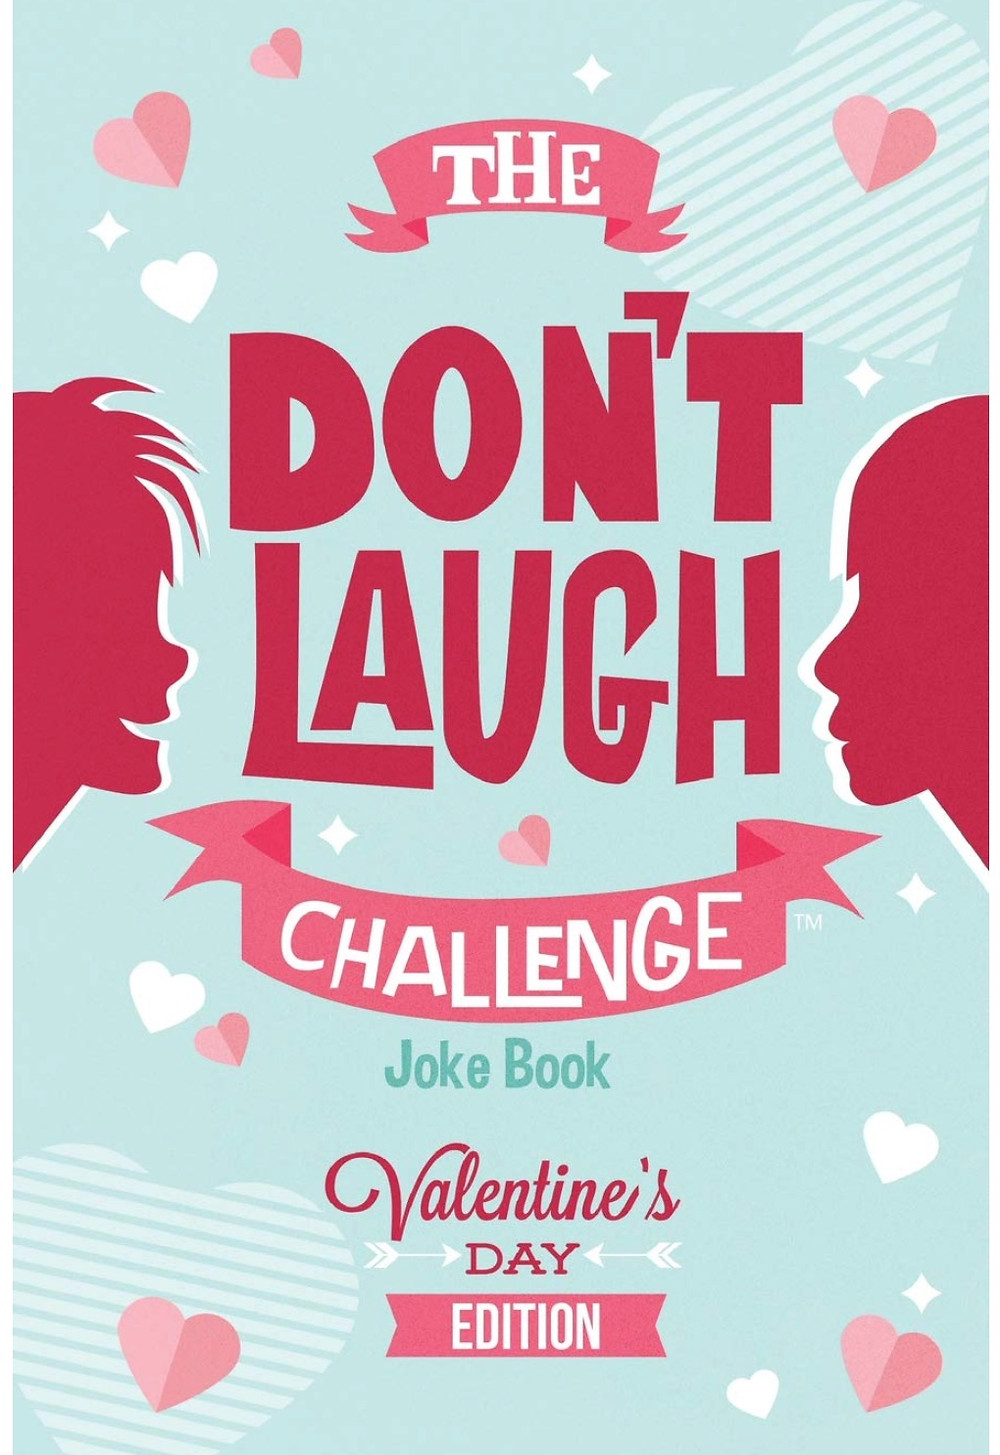 The Don't Laugh Joke Book Valentine's Day Edition